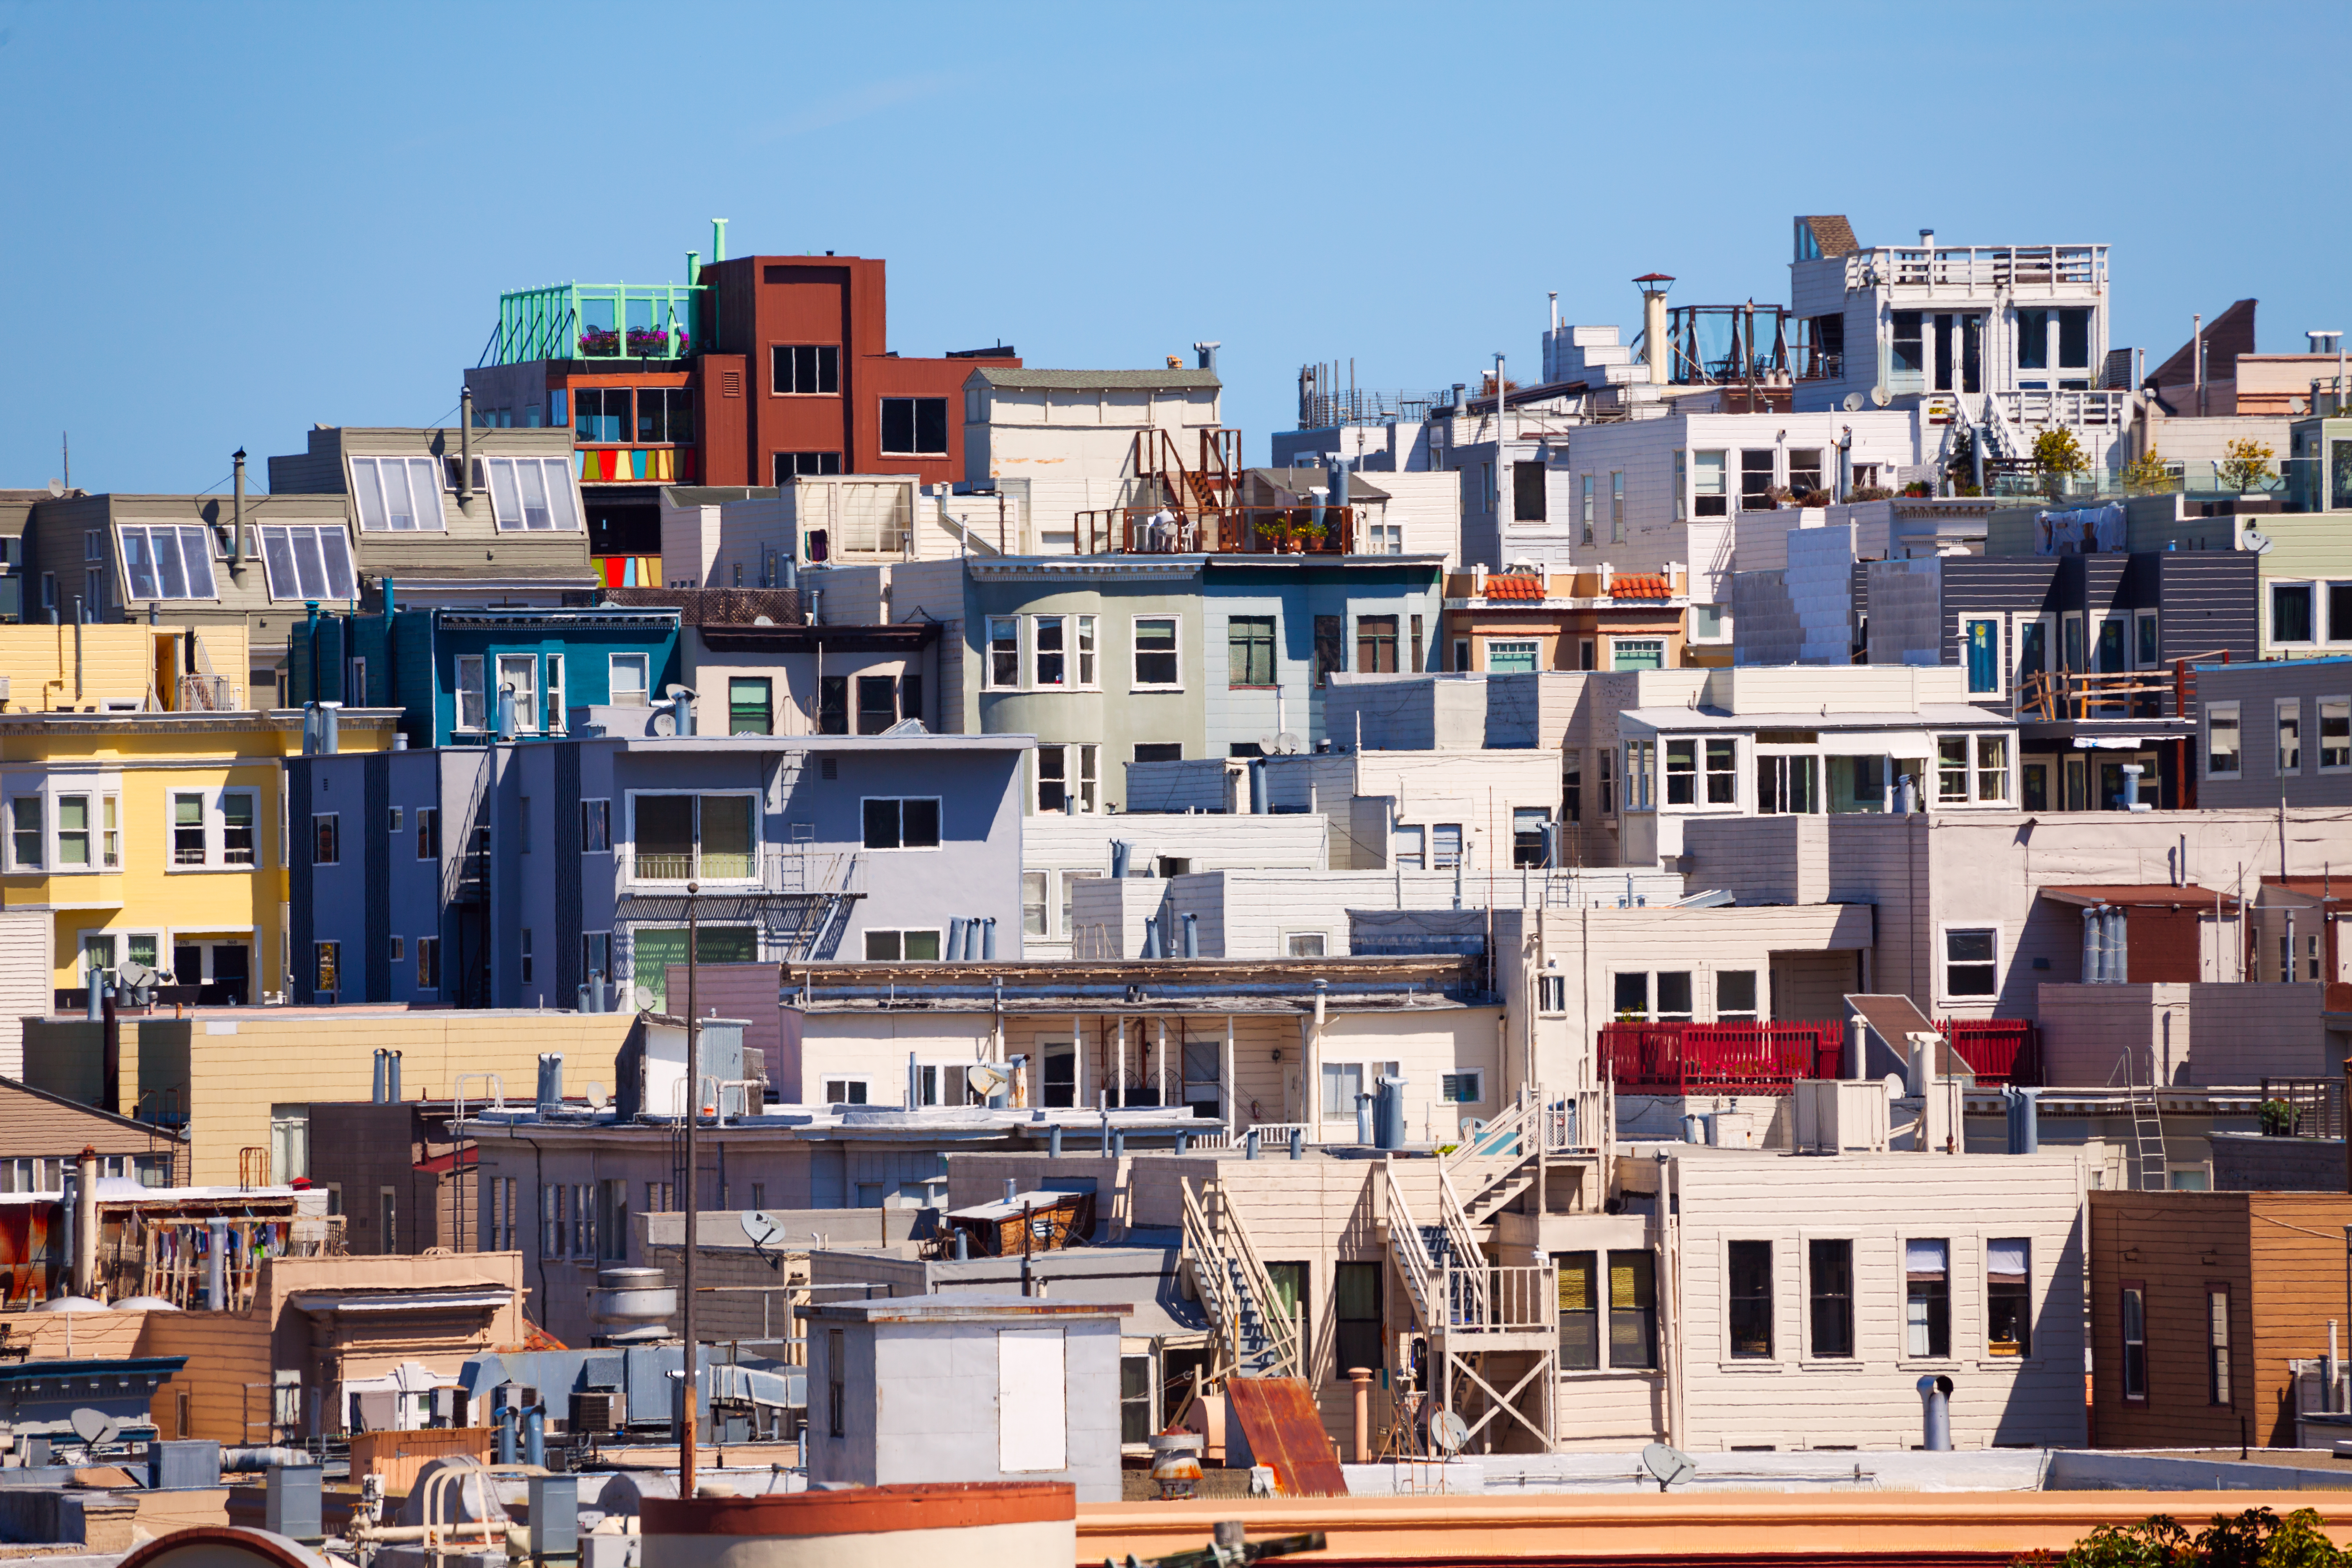 A series of colorful mid-rise apartment buildings from the 1920s through the 1940s, all clustered together on a hillside under a blue sky.